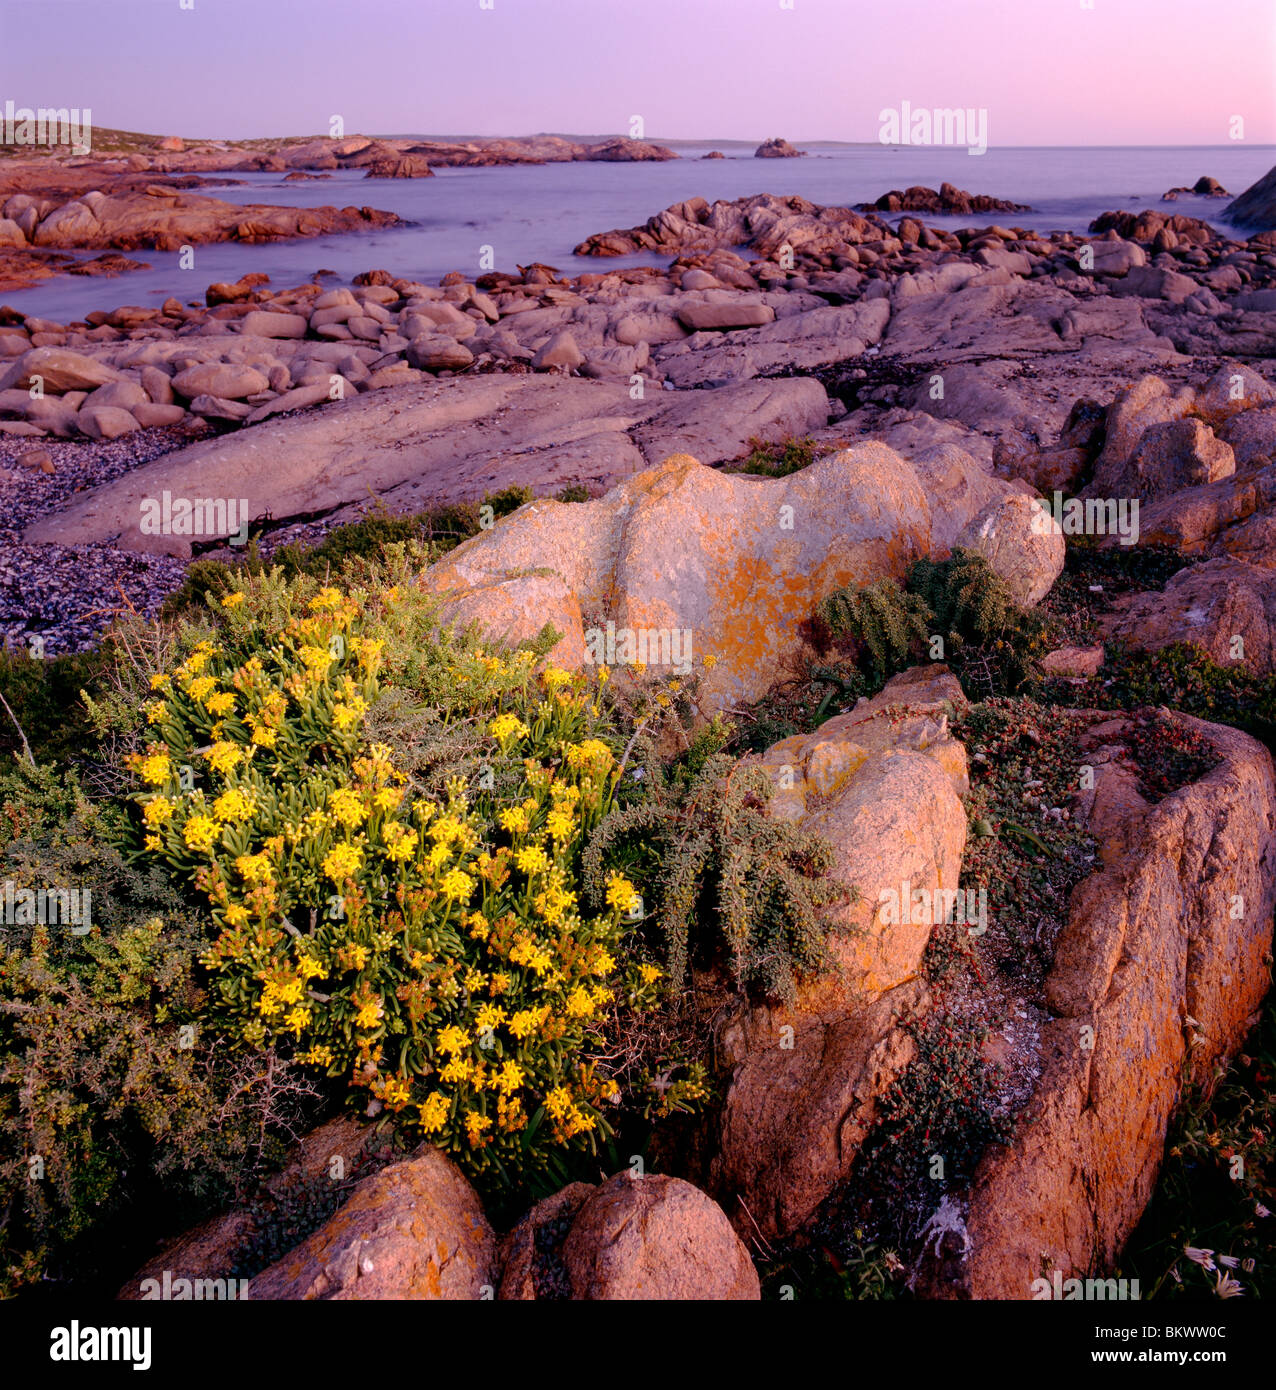 Wildflowers grow along the rocky shoreline at Tietiesbaai in Cape Columbine Nature Reserve, South Africa - Stock Image